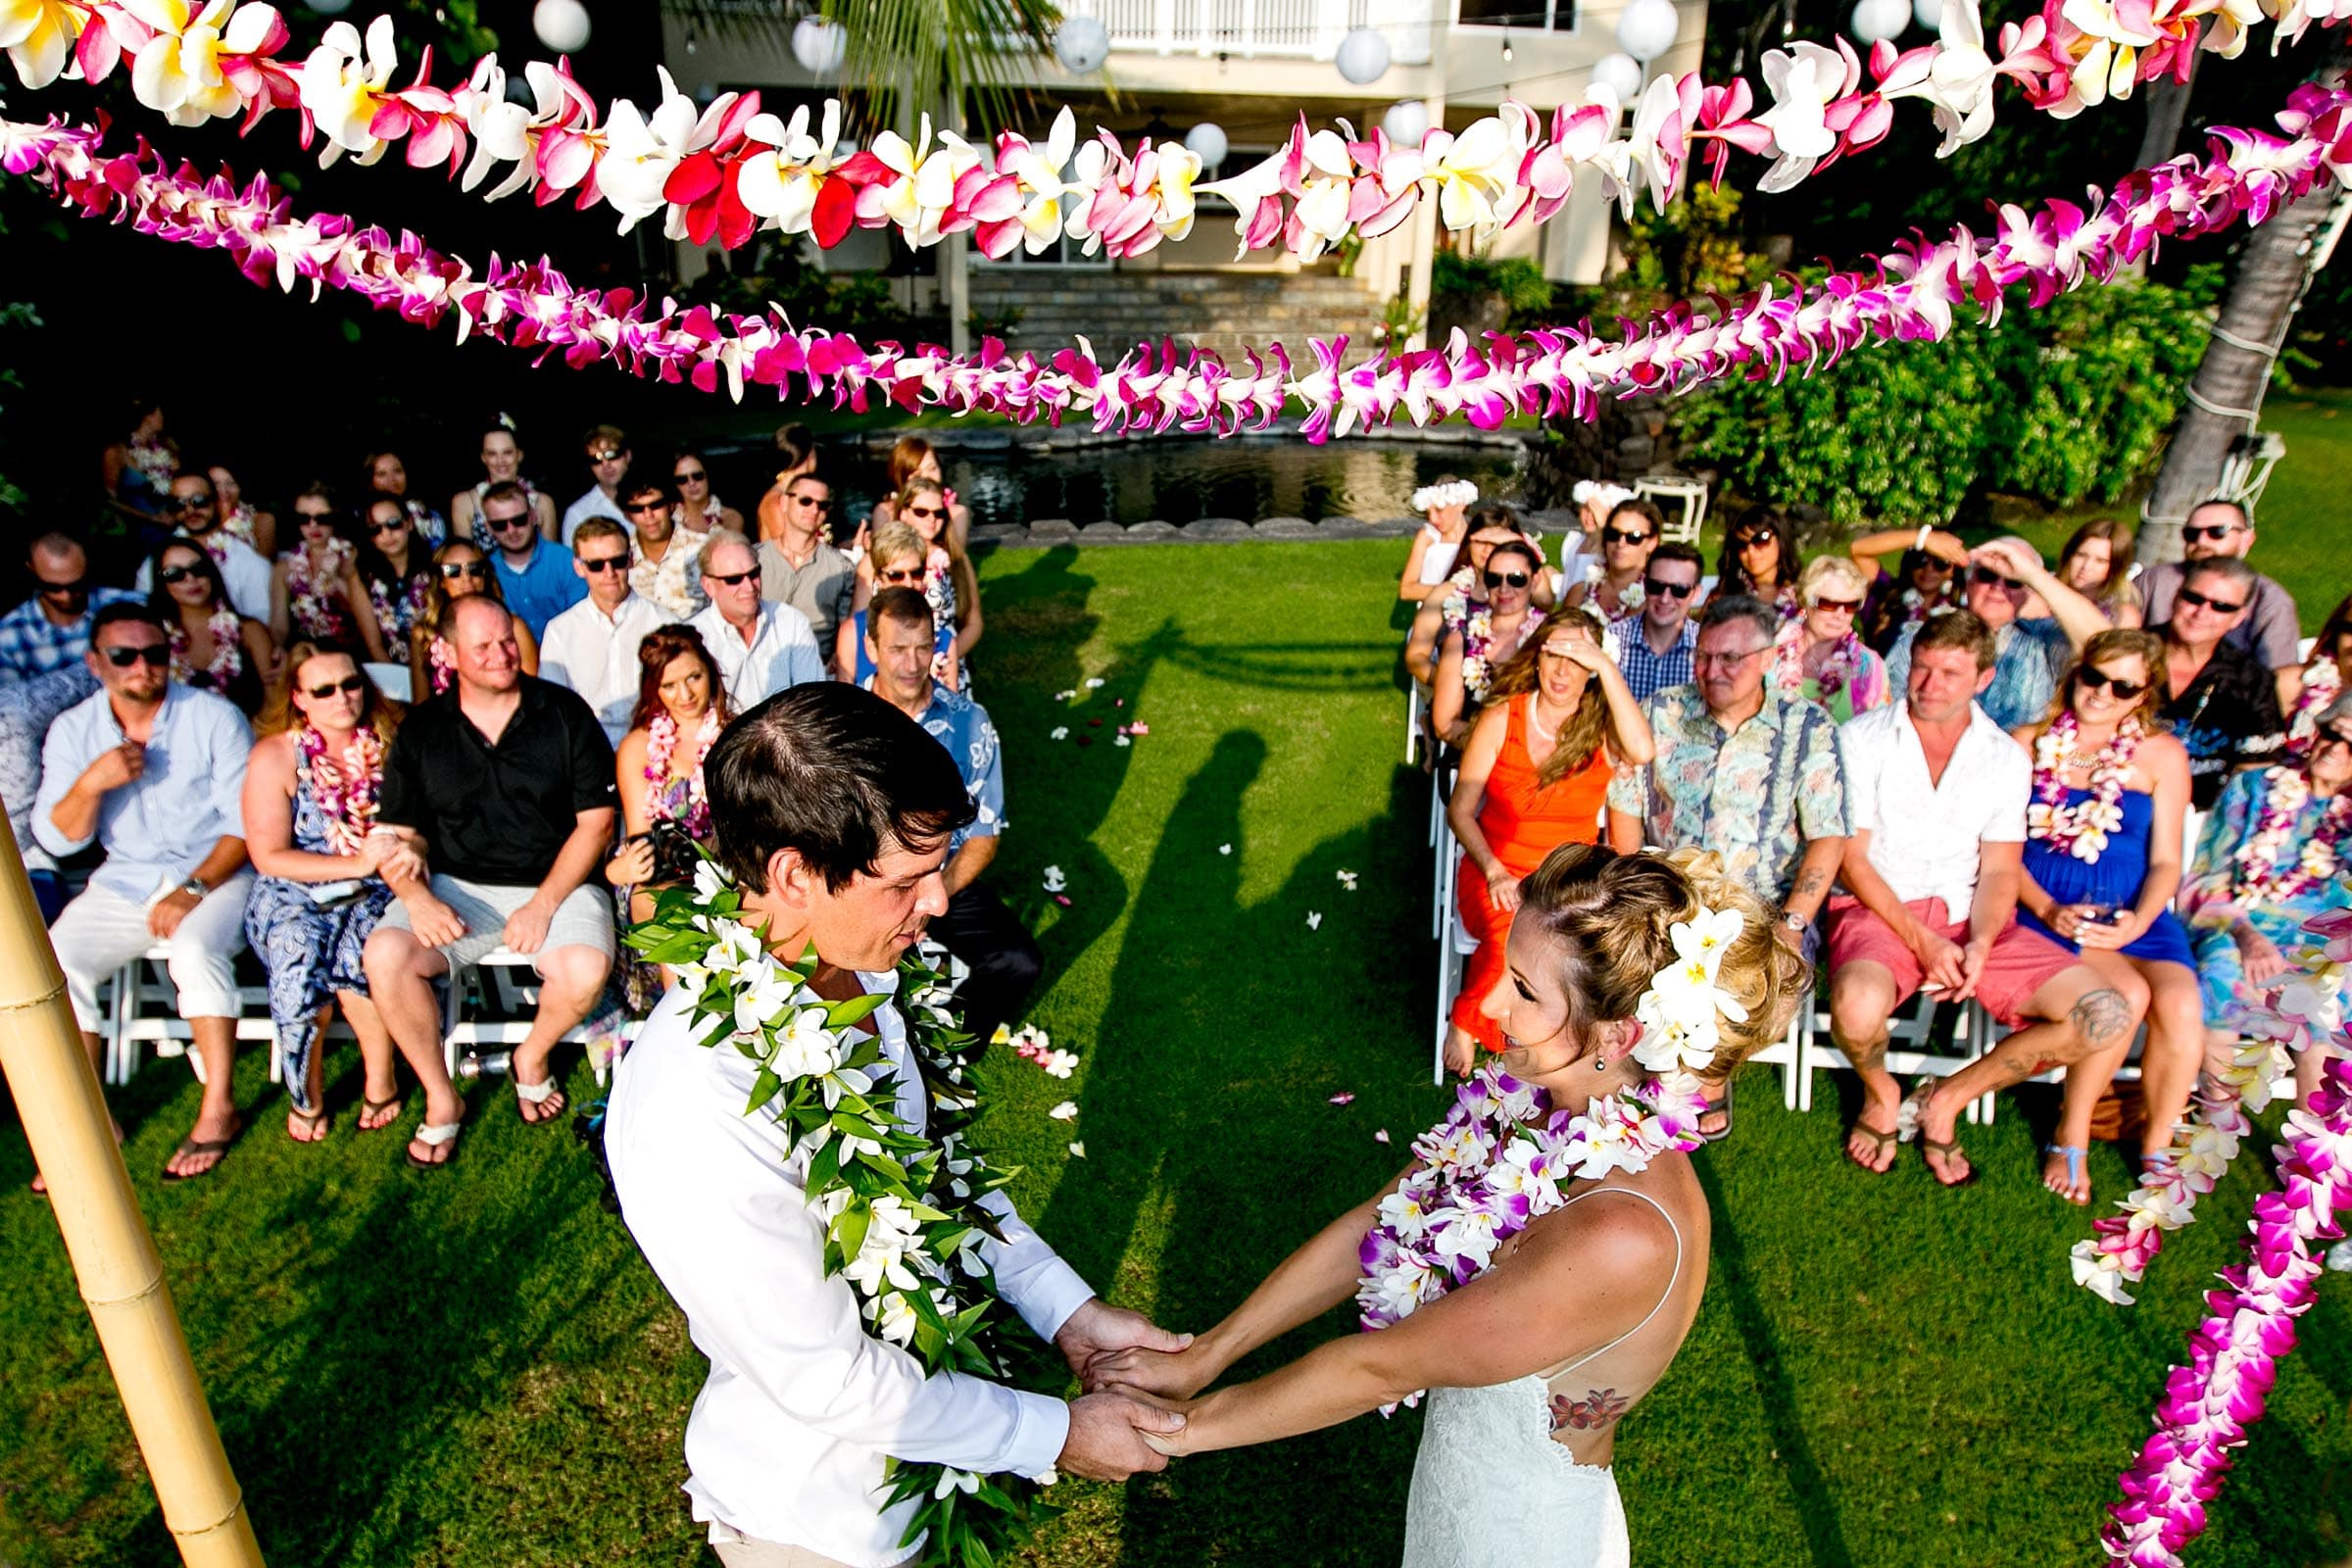 Wide angle view of guests through the bride and groom during a Kailua Kona Wedding ceremony at the Kona Beach Bungalows on the Big Island of Hawaii